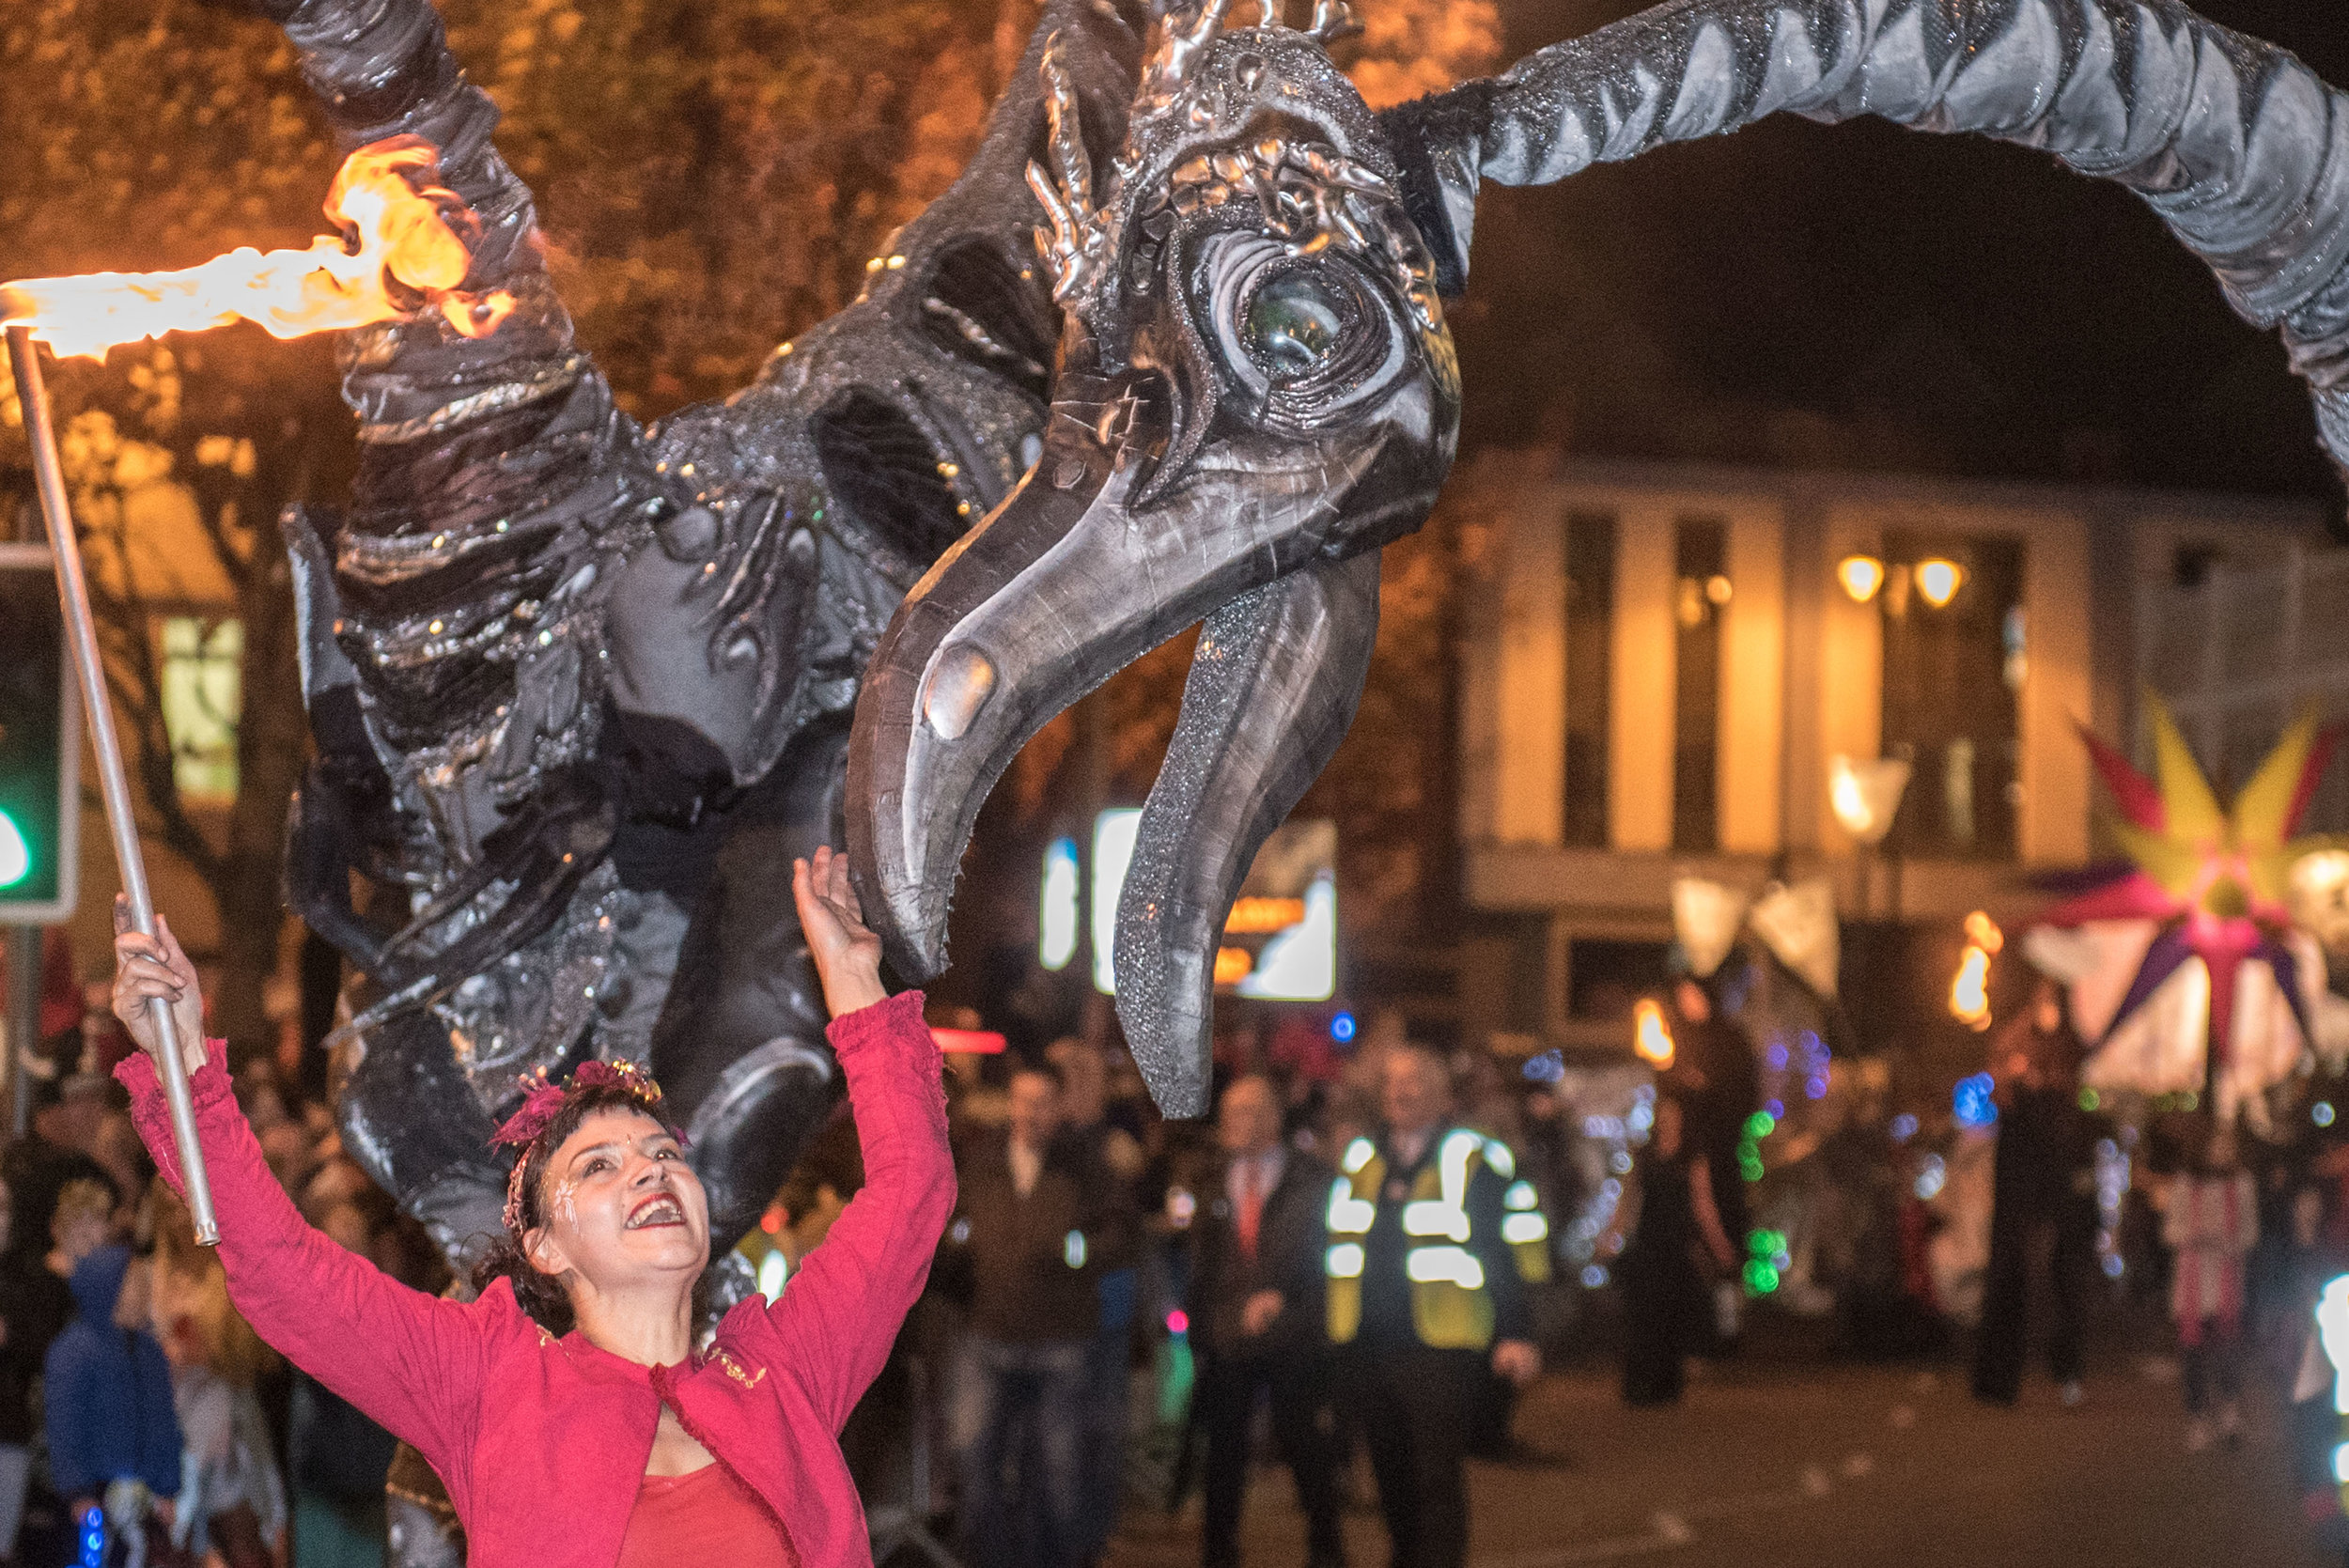 No fee for reproduction